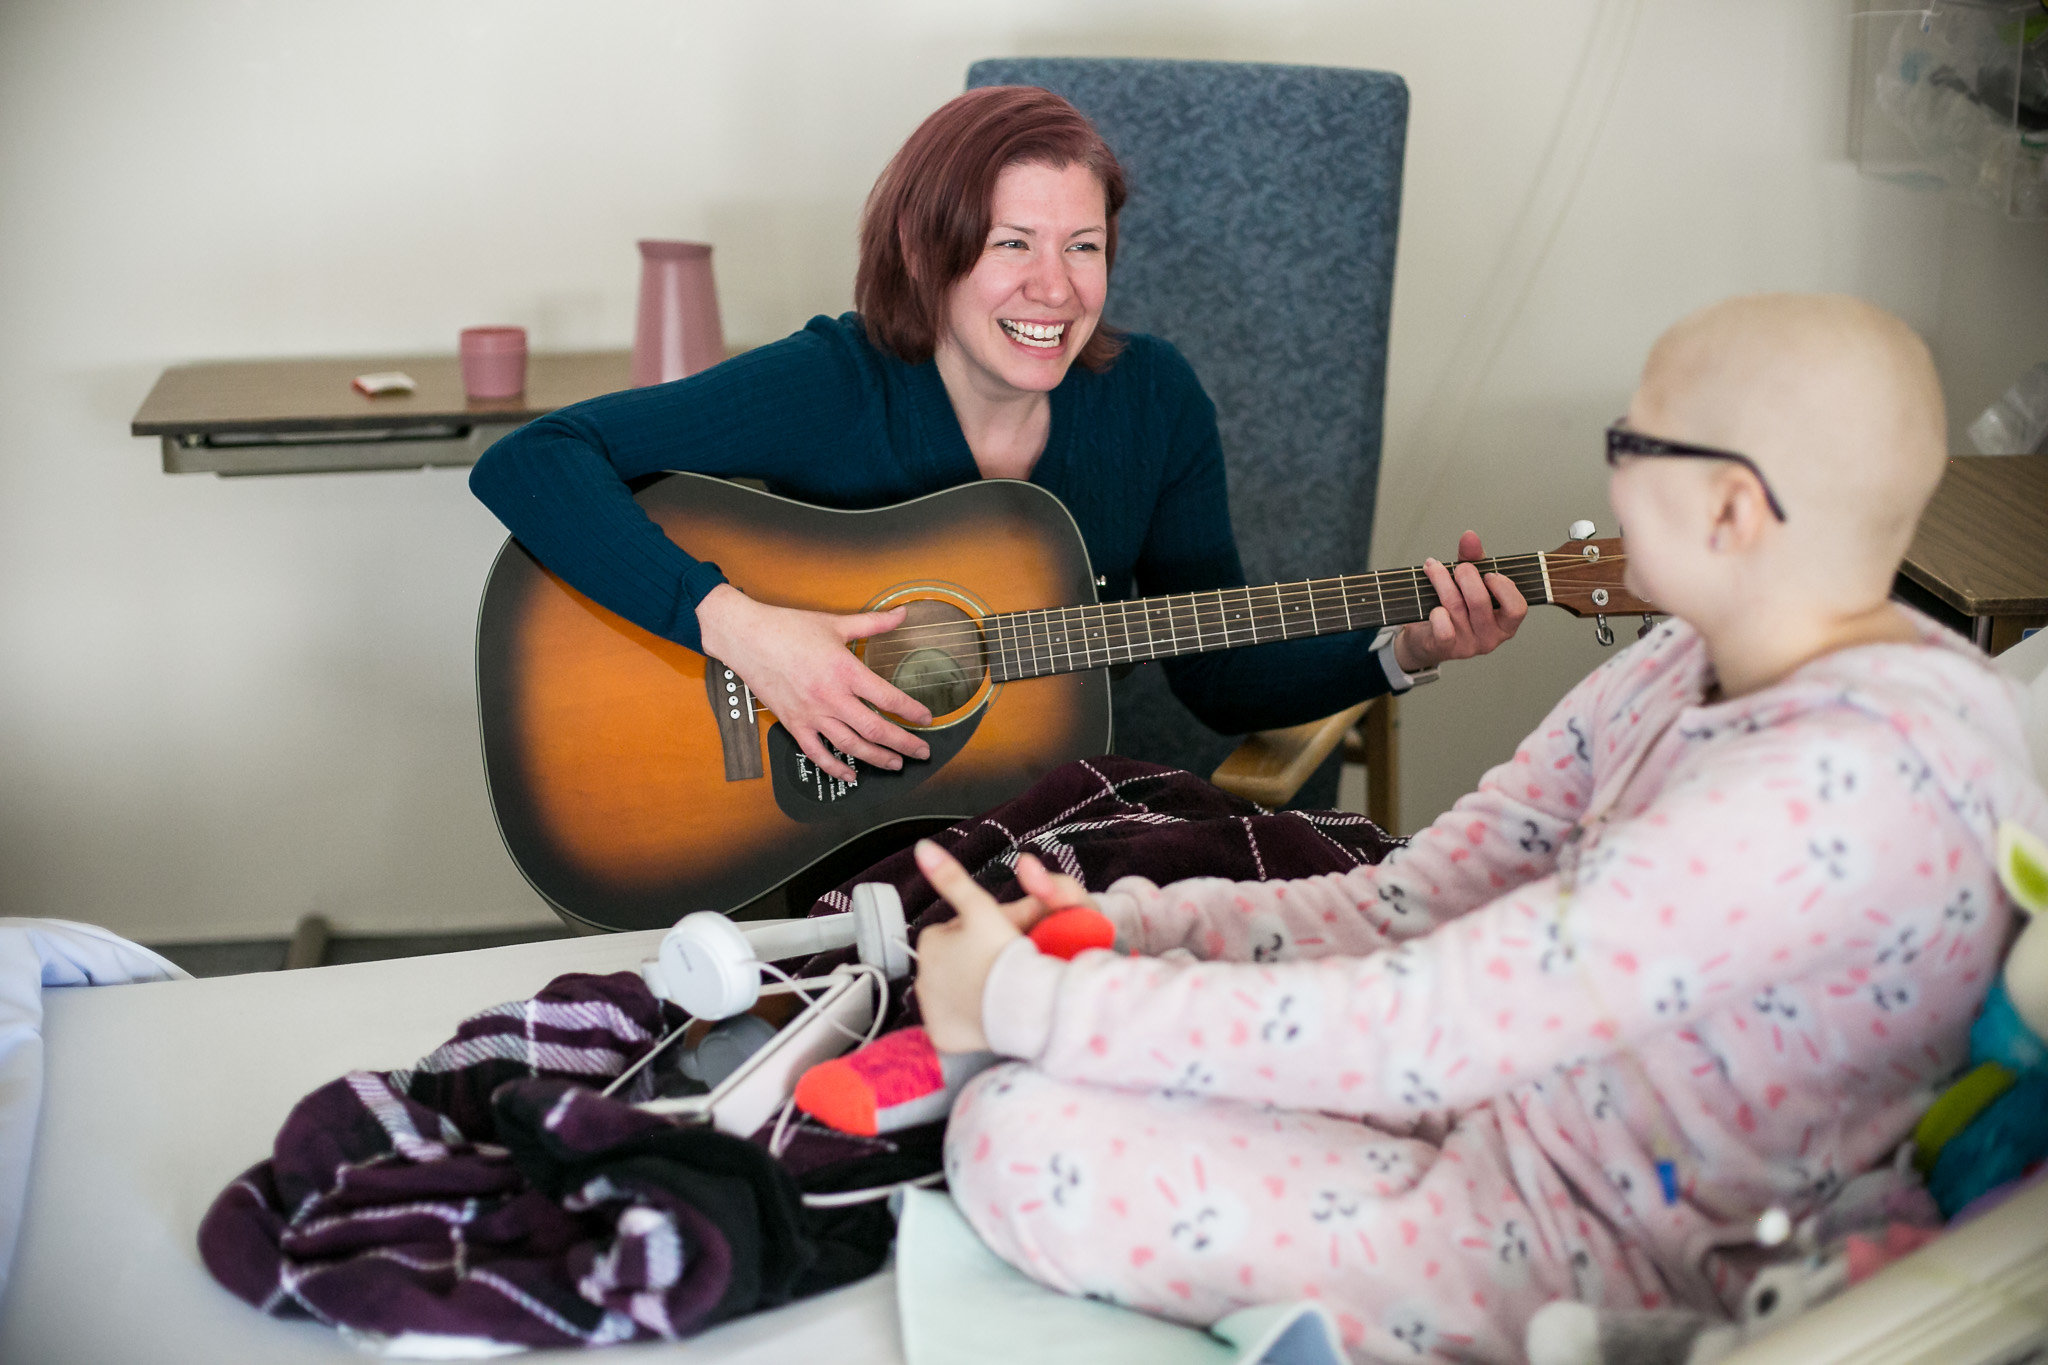 therapist therapy children pediatrics joins hospital performance hoeft session